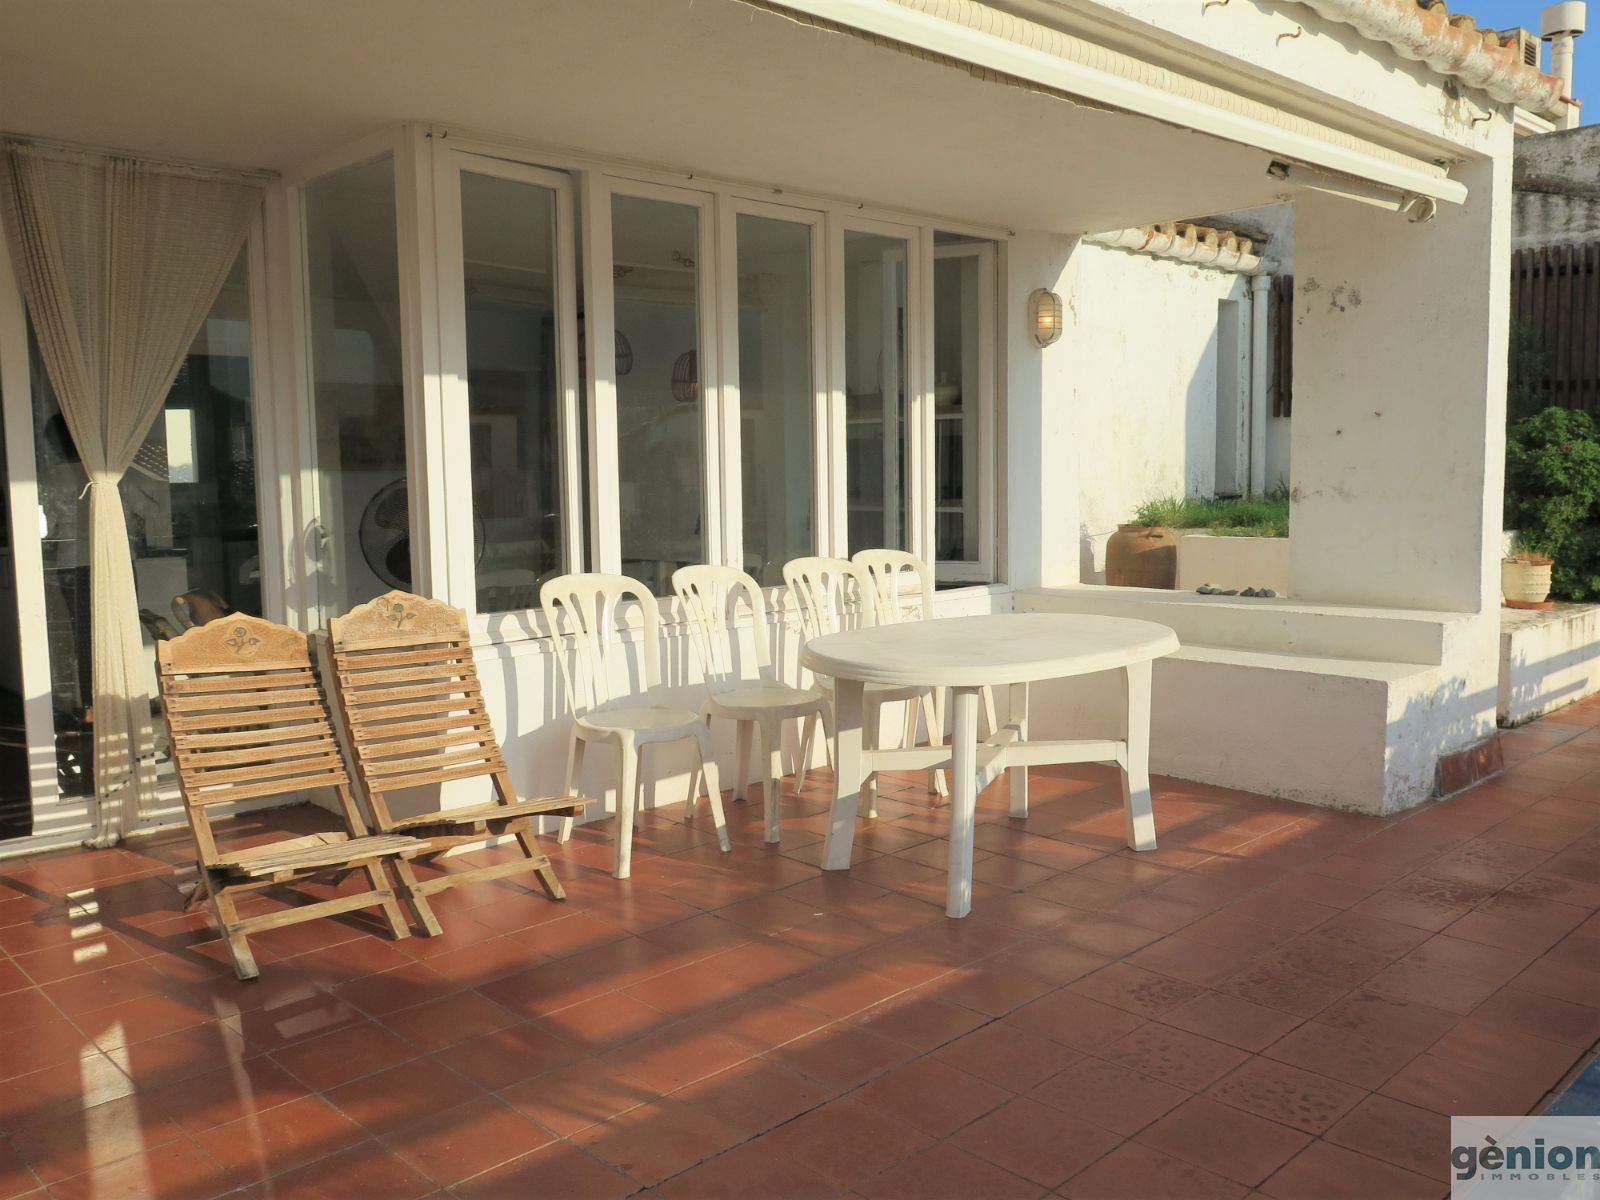 FIVE-BEDROOM HOUSE IN PORT DE LA SELVA. TOWN CENTRE, JUST A FEW METRES FROM THE BEACH